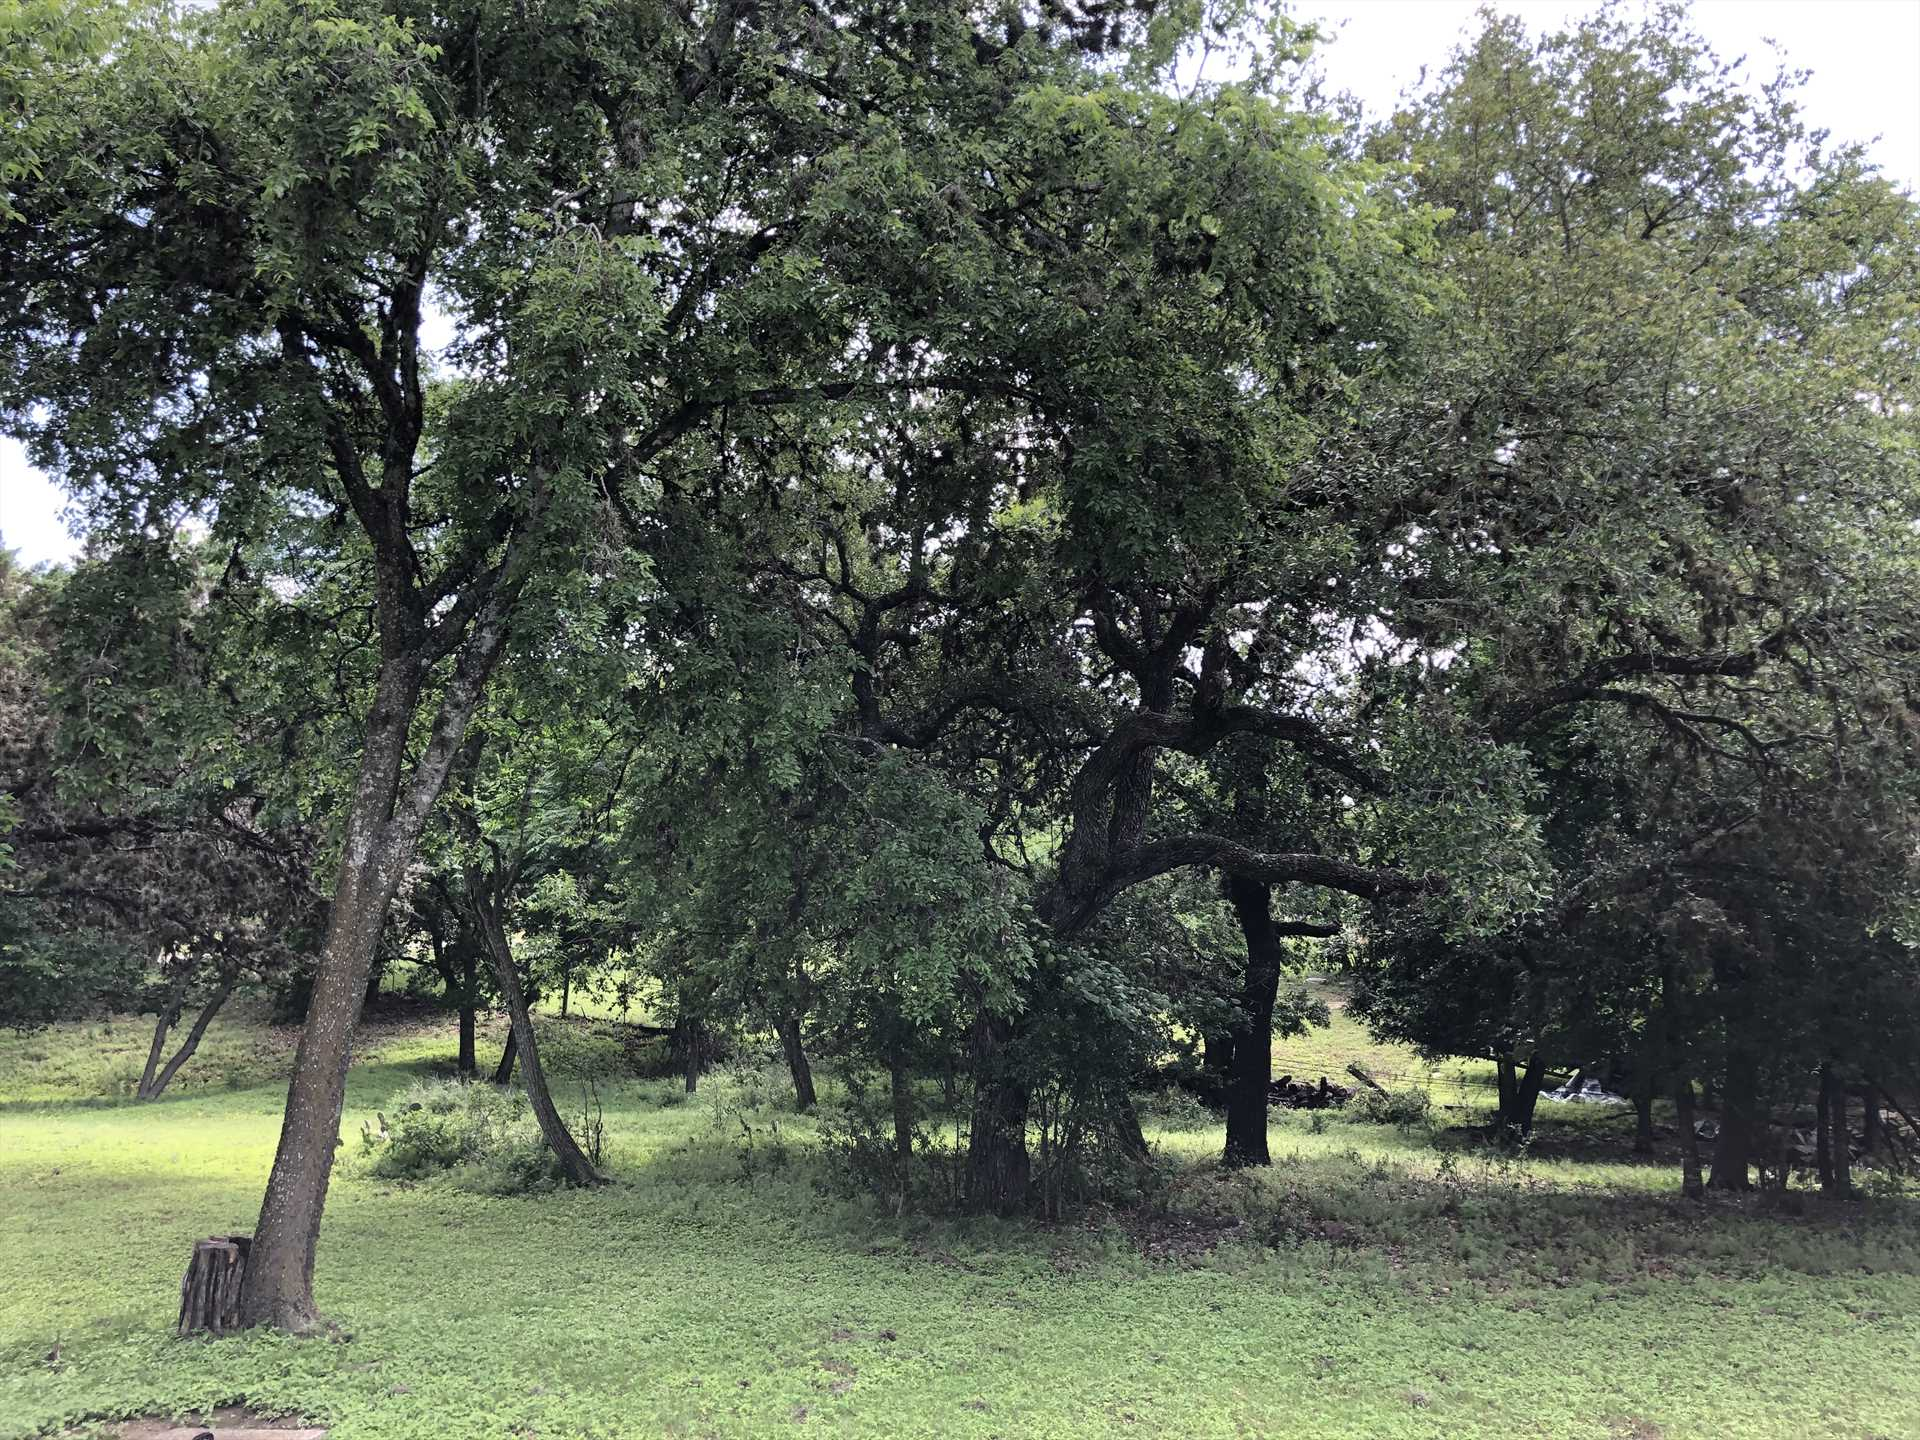 The trees populating the grounds here serve as a backdrop for wildlife viewing, and are great spots for family photos, too!